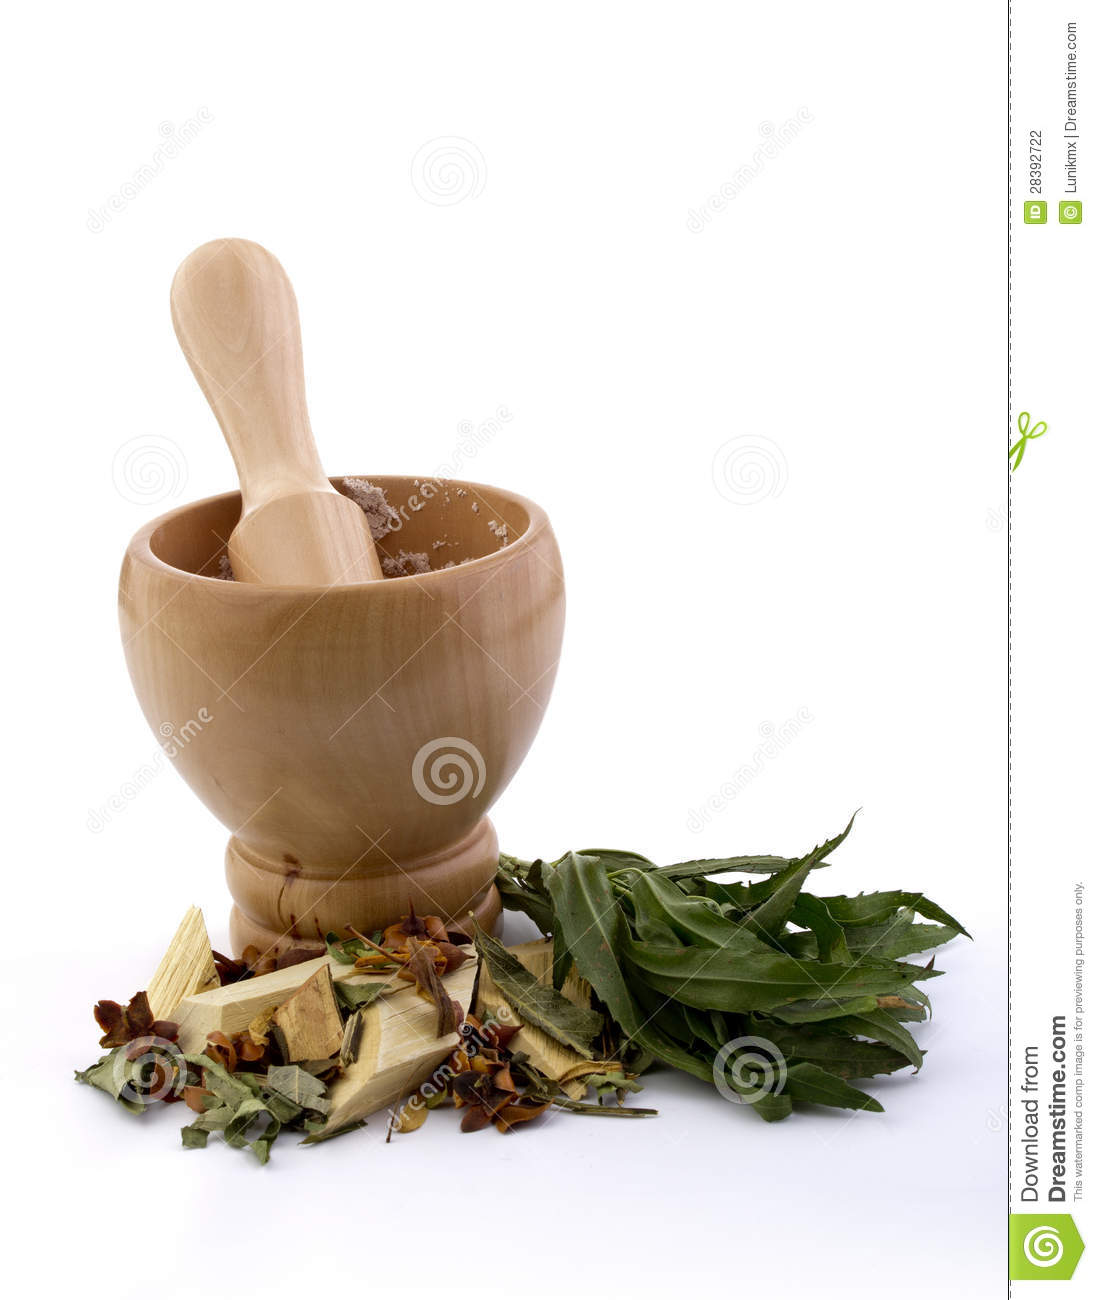 how to use mortar and pestle ark